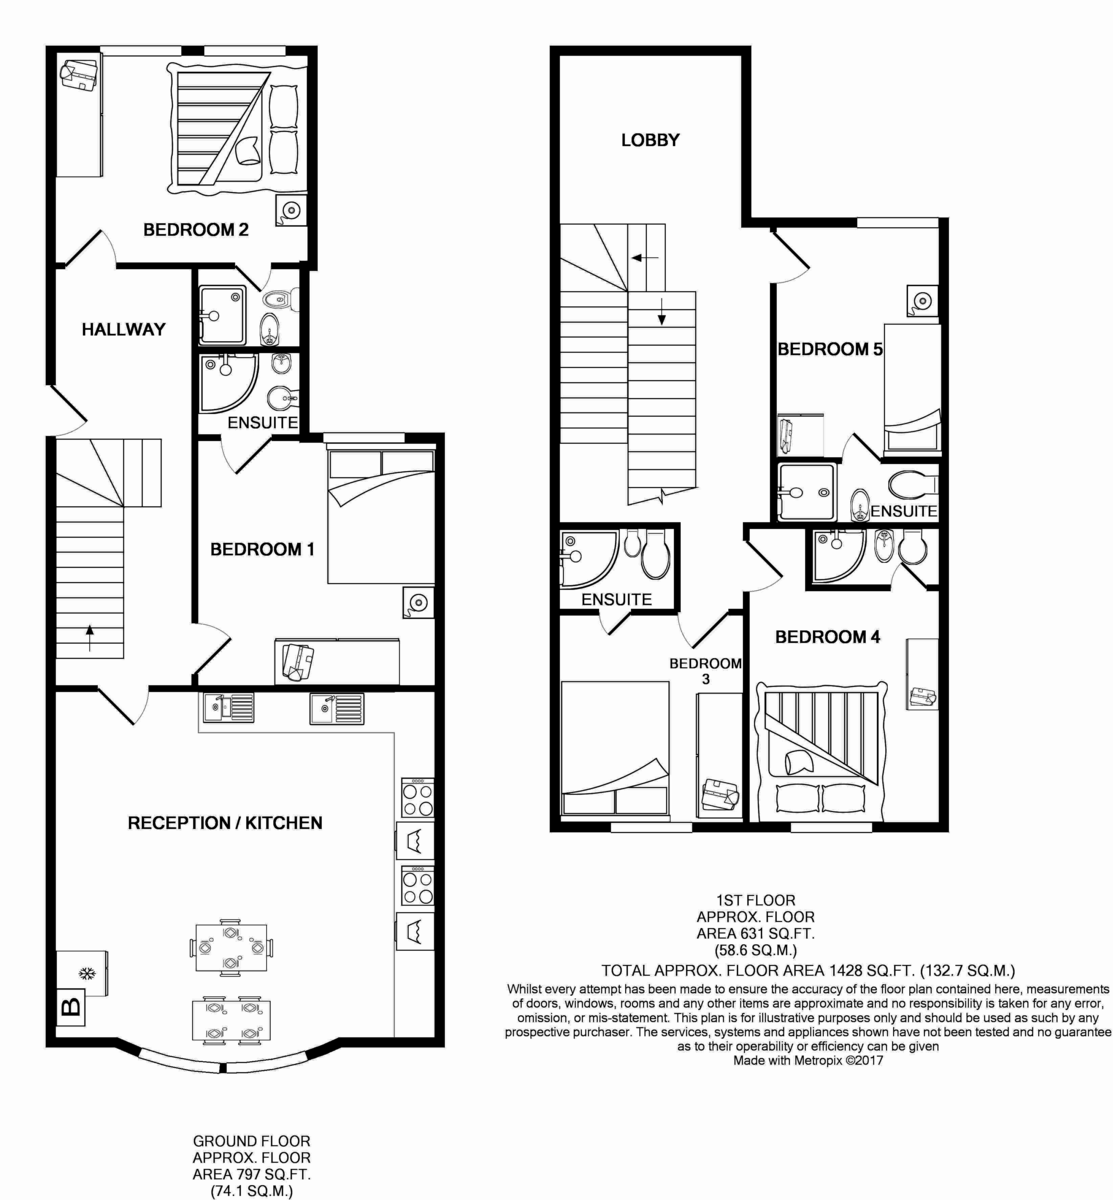 Floorplans For Harrow Road, Wembley,HA9 6BA